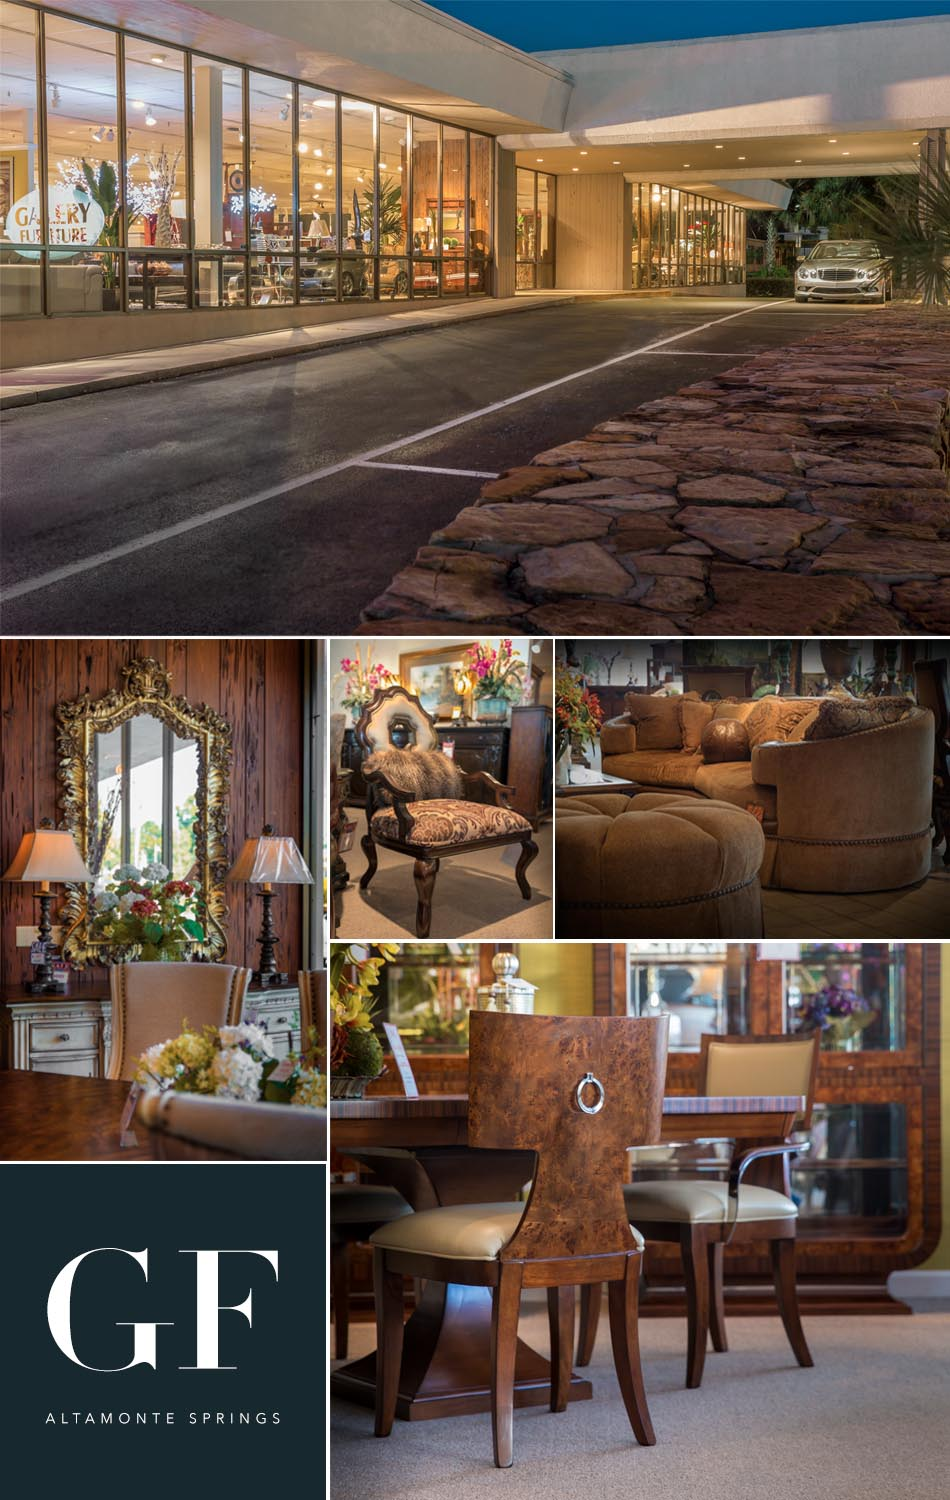 Altamonte Springs Furniture Store